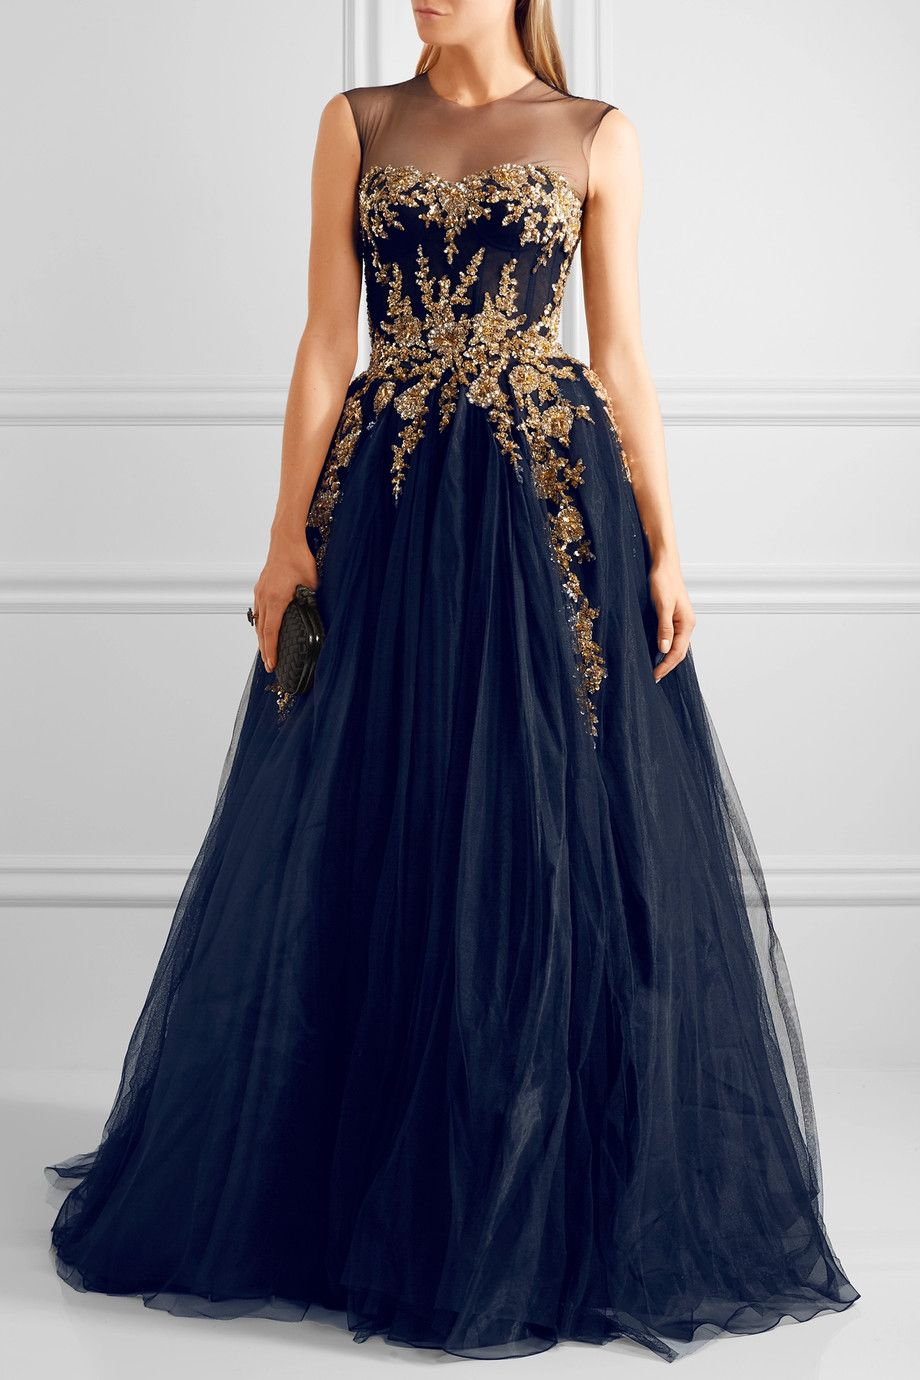 Reem Acra Embellished Tulle Gown Navy Blue With Gold